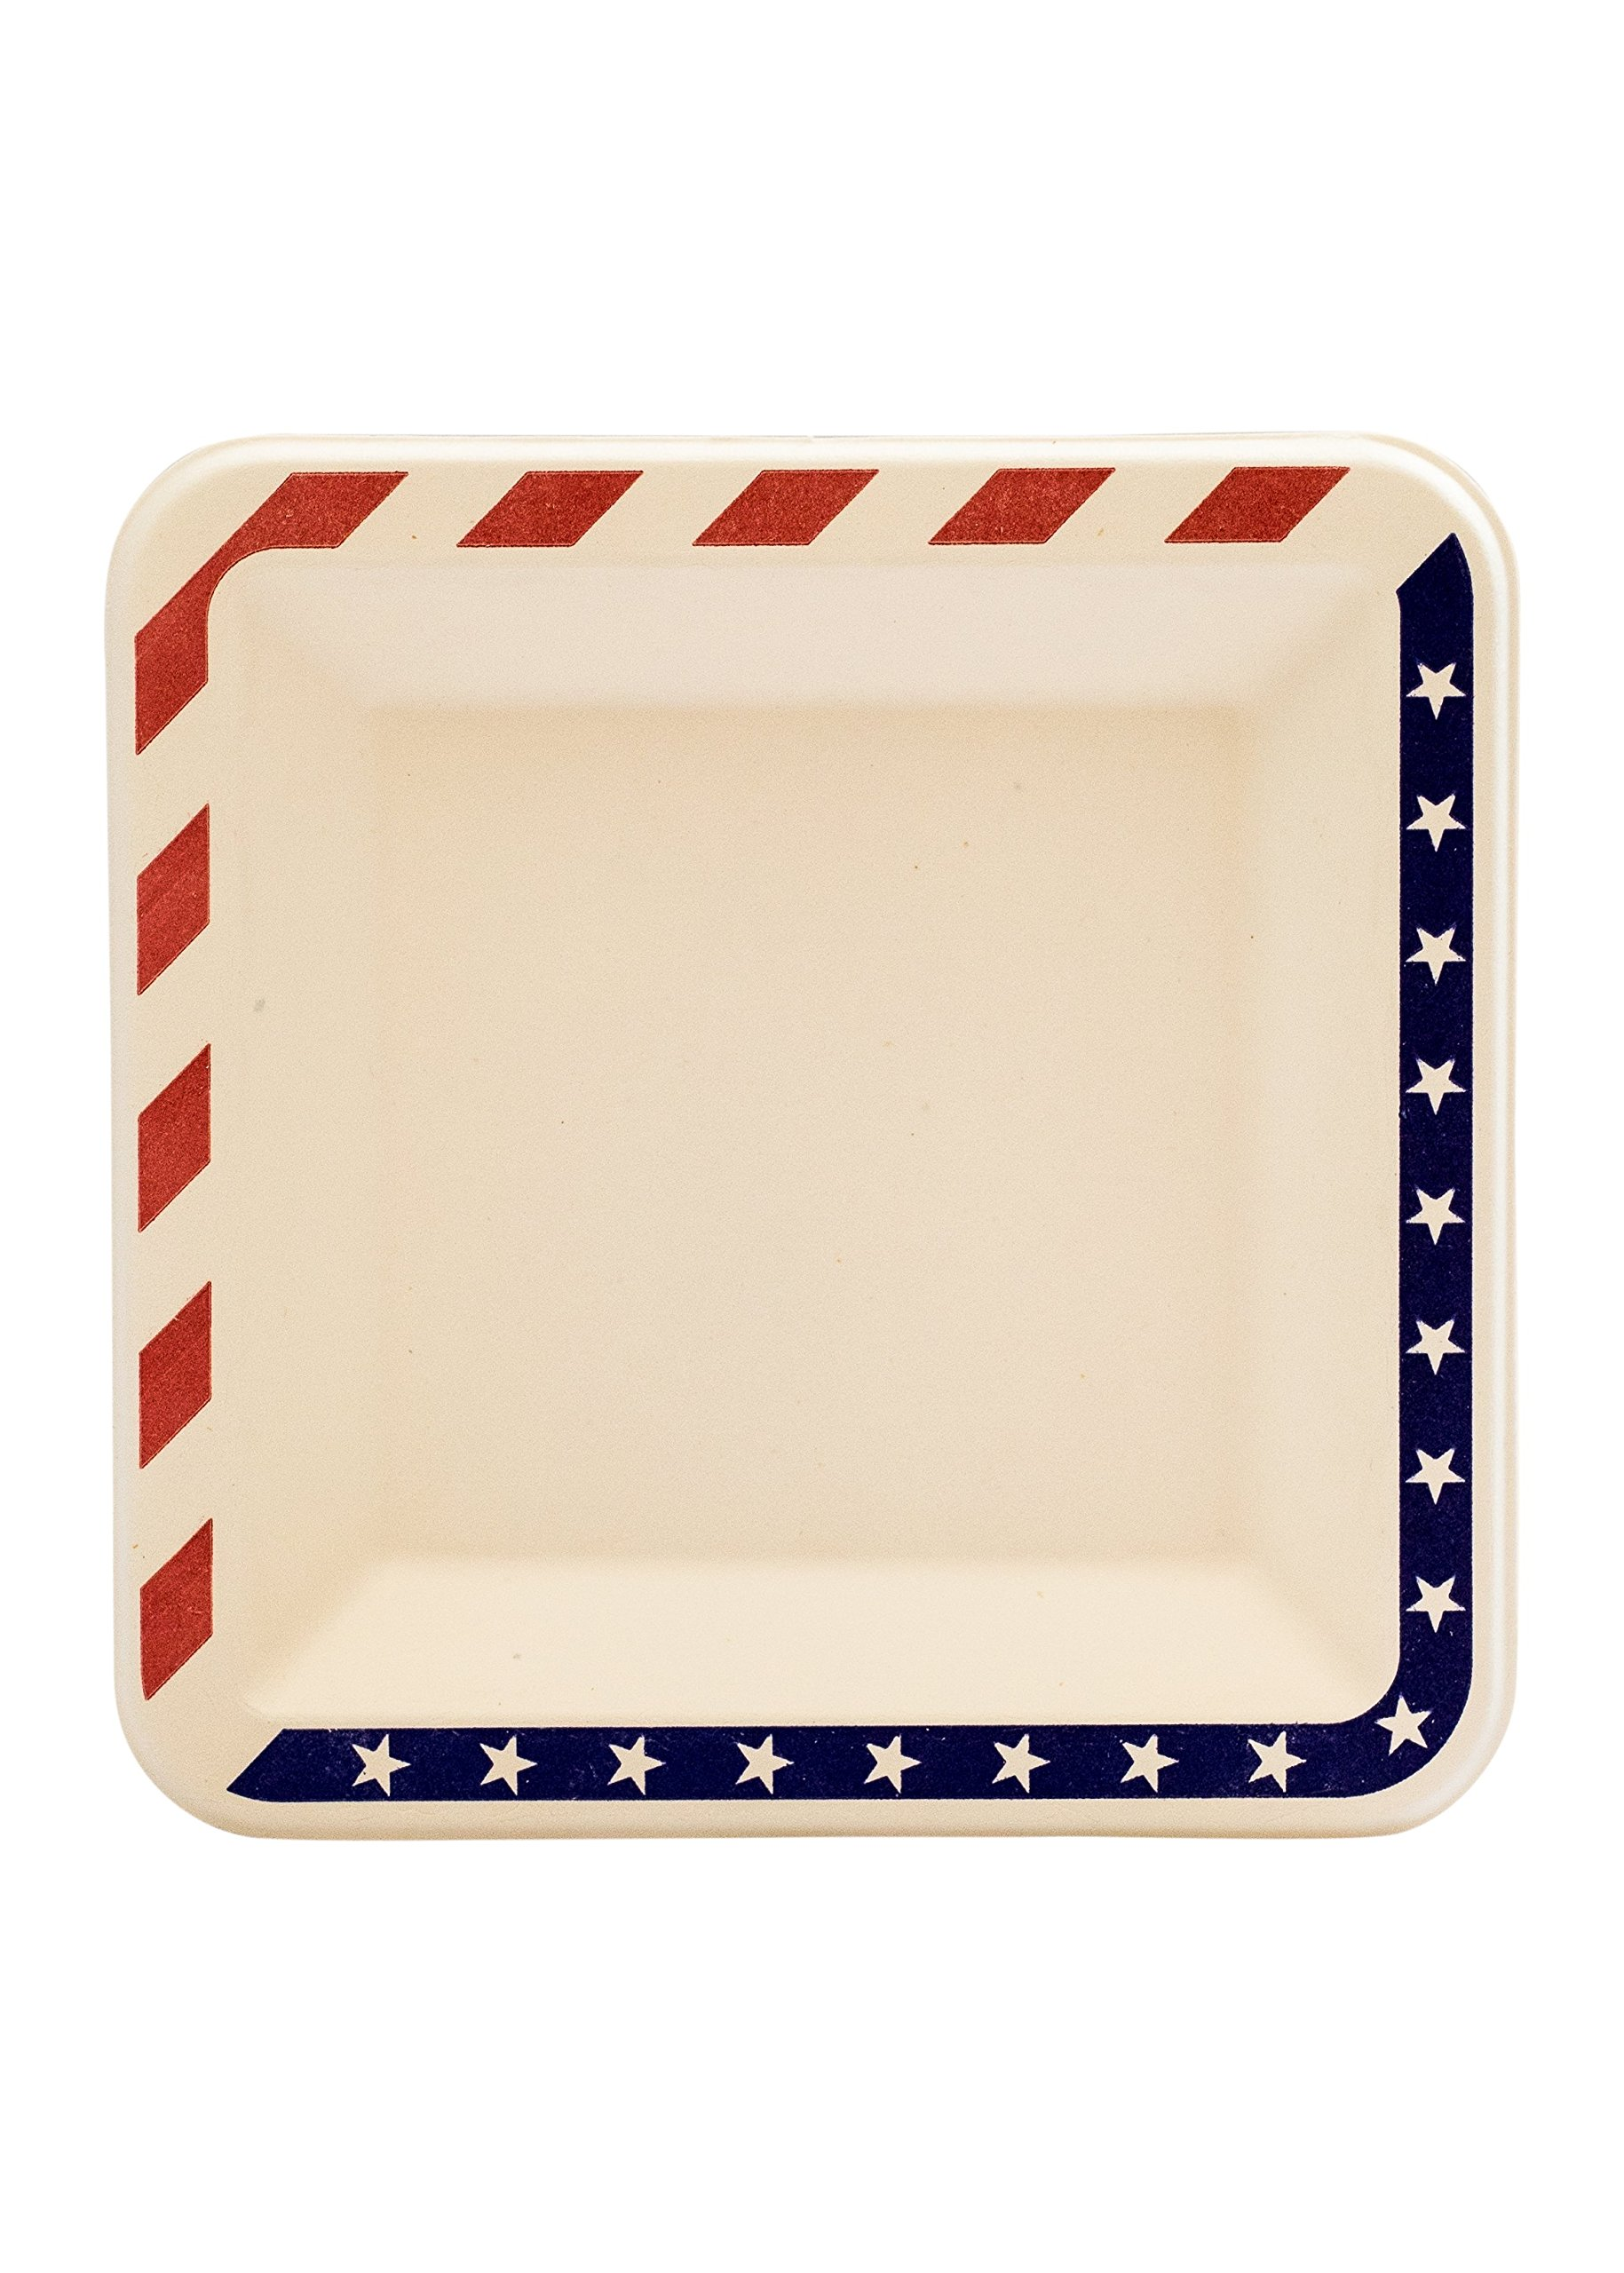 [100 COUNT] 6.5'' inches American Contemporary Bagasse Eco Disposable White Plates - Natural Sugarcane Fibers Compostable Environmental Friendly Paper Plastic Alternative 100% by-product (USA Flag)